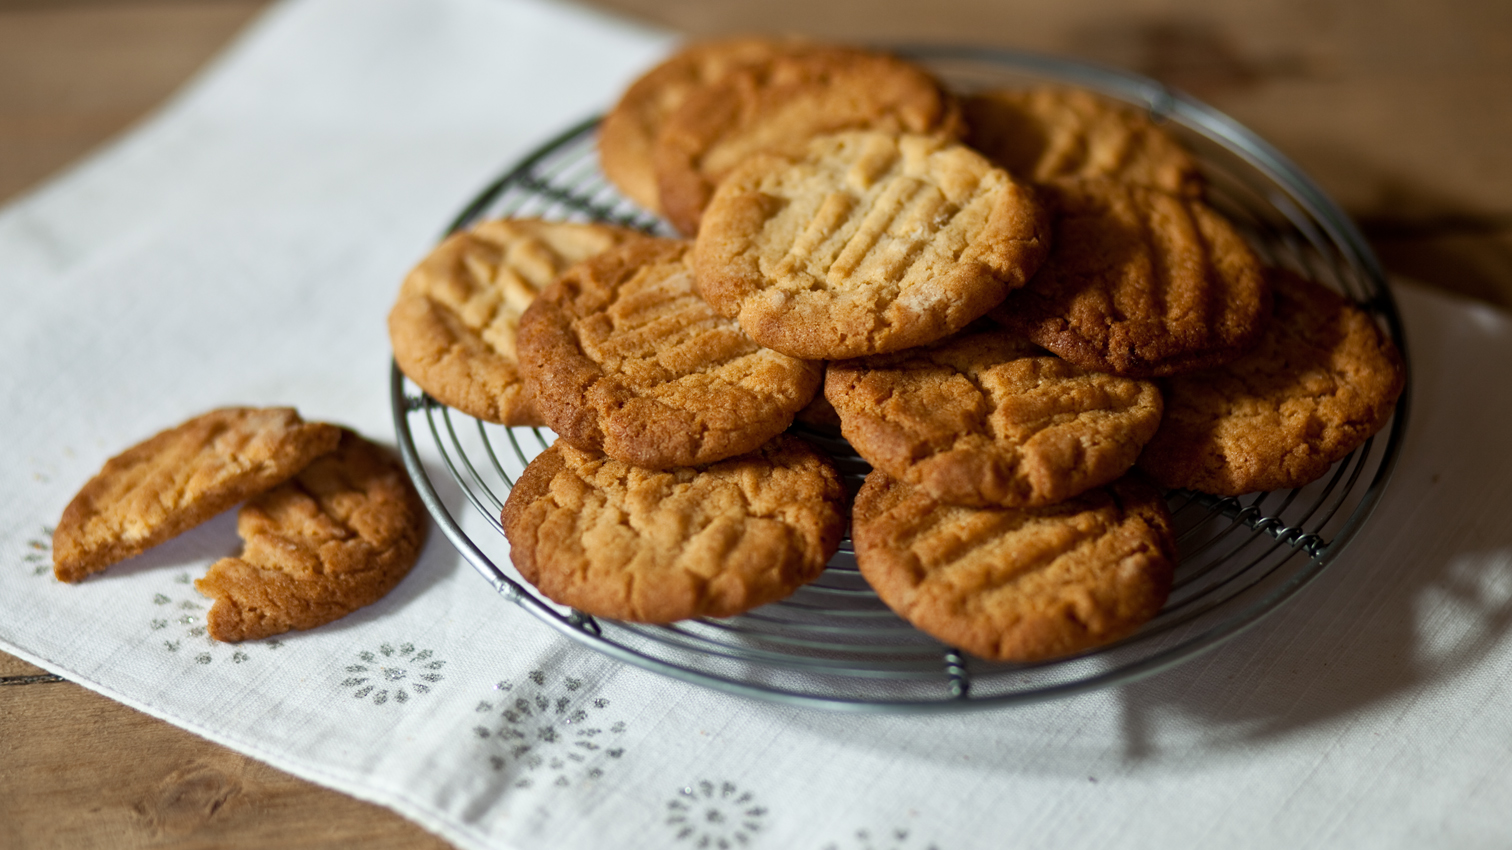 Paul S Mum S Ginger Biscuits Recipe Bbc Food